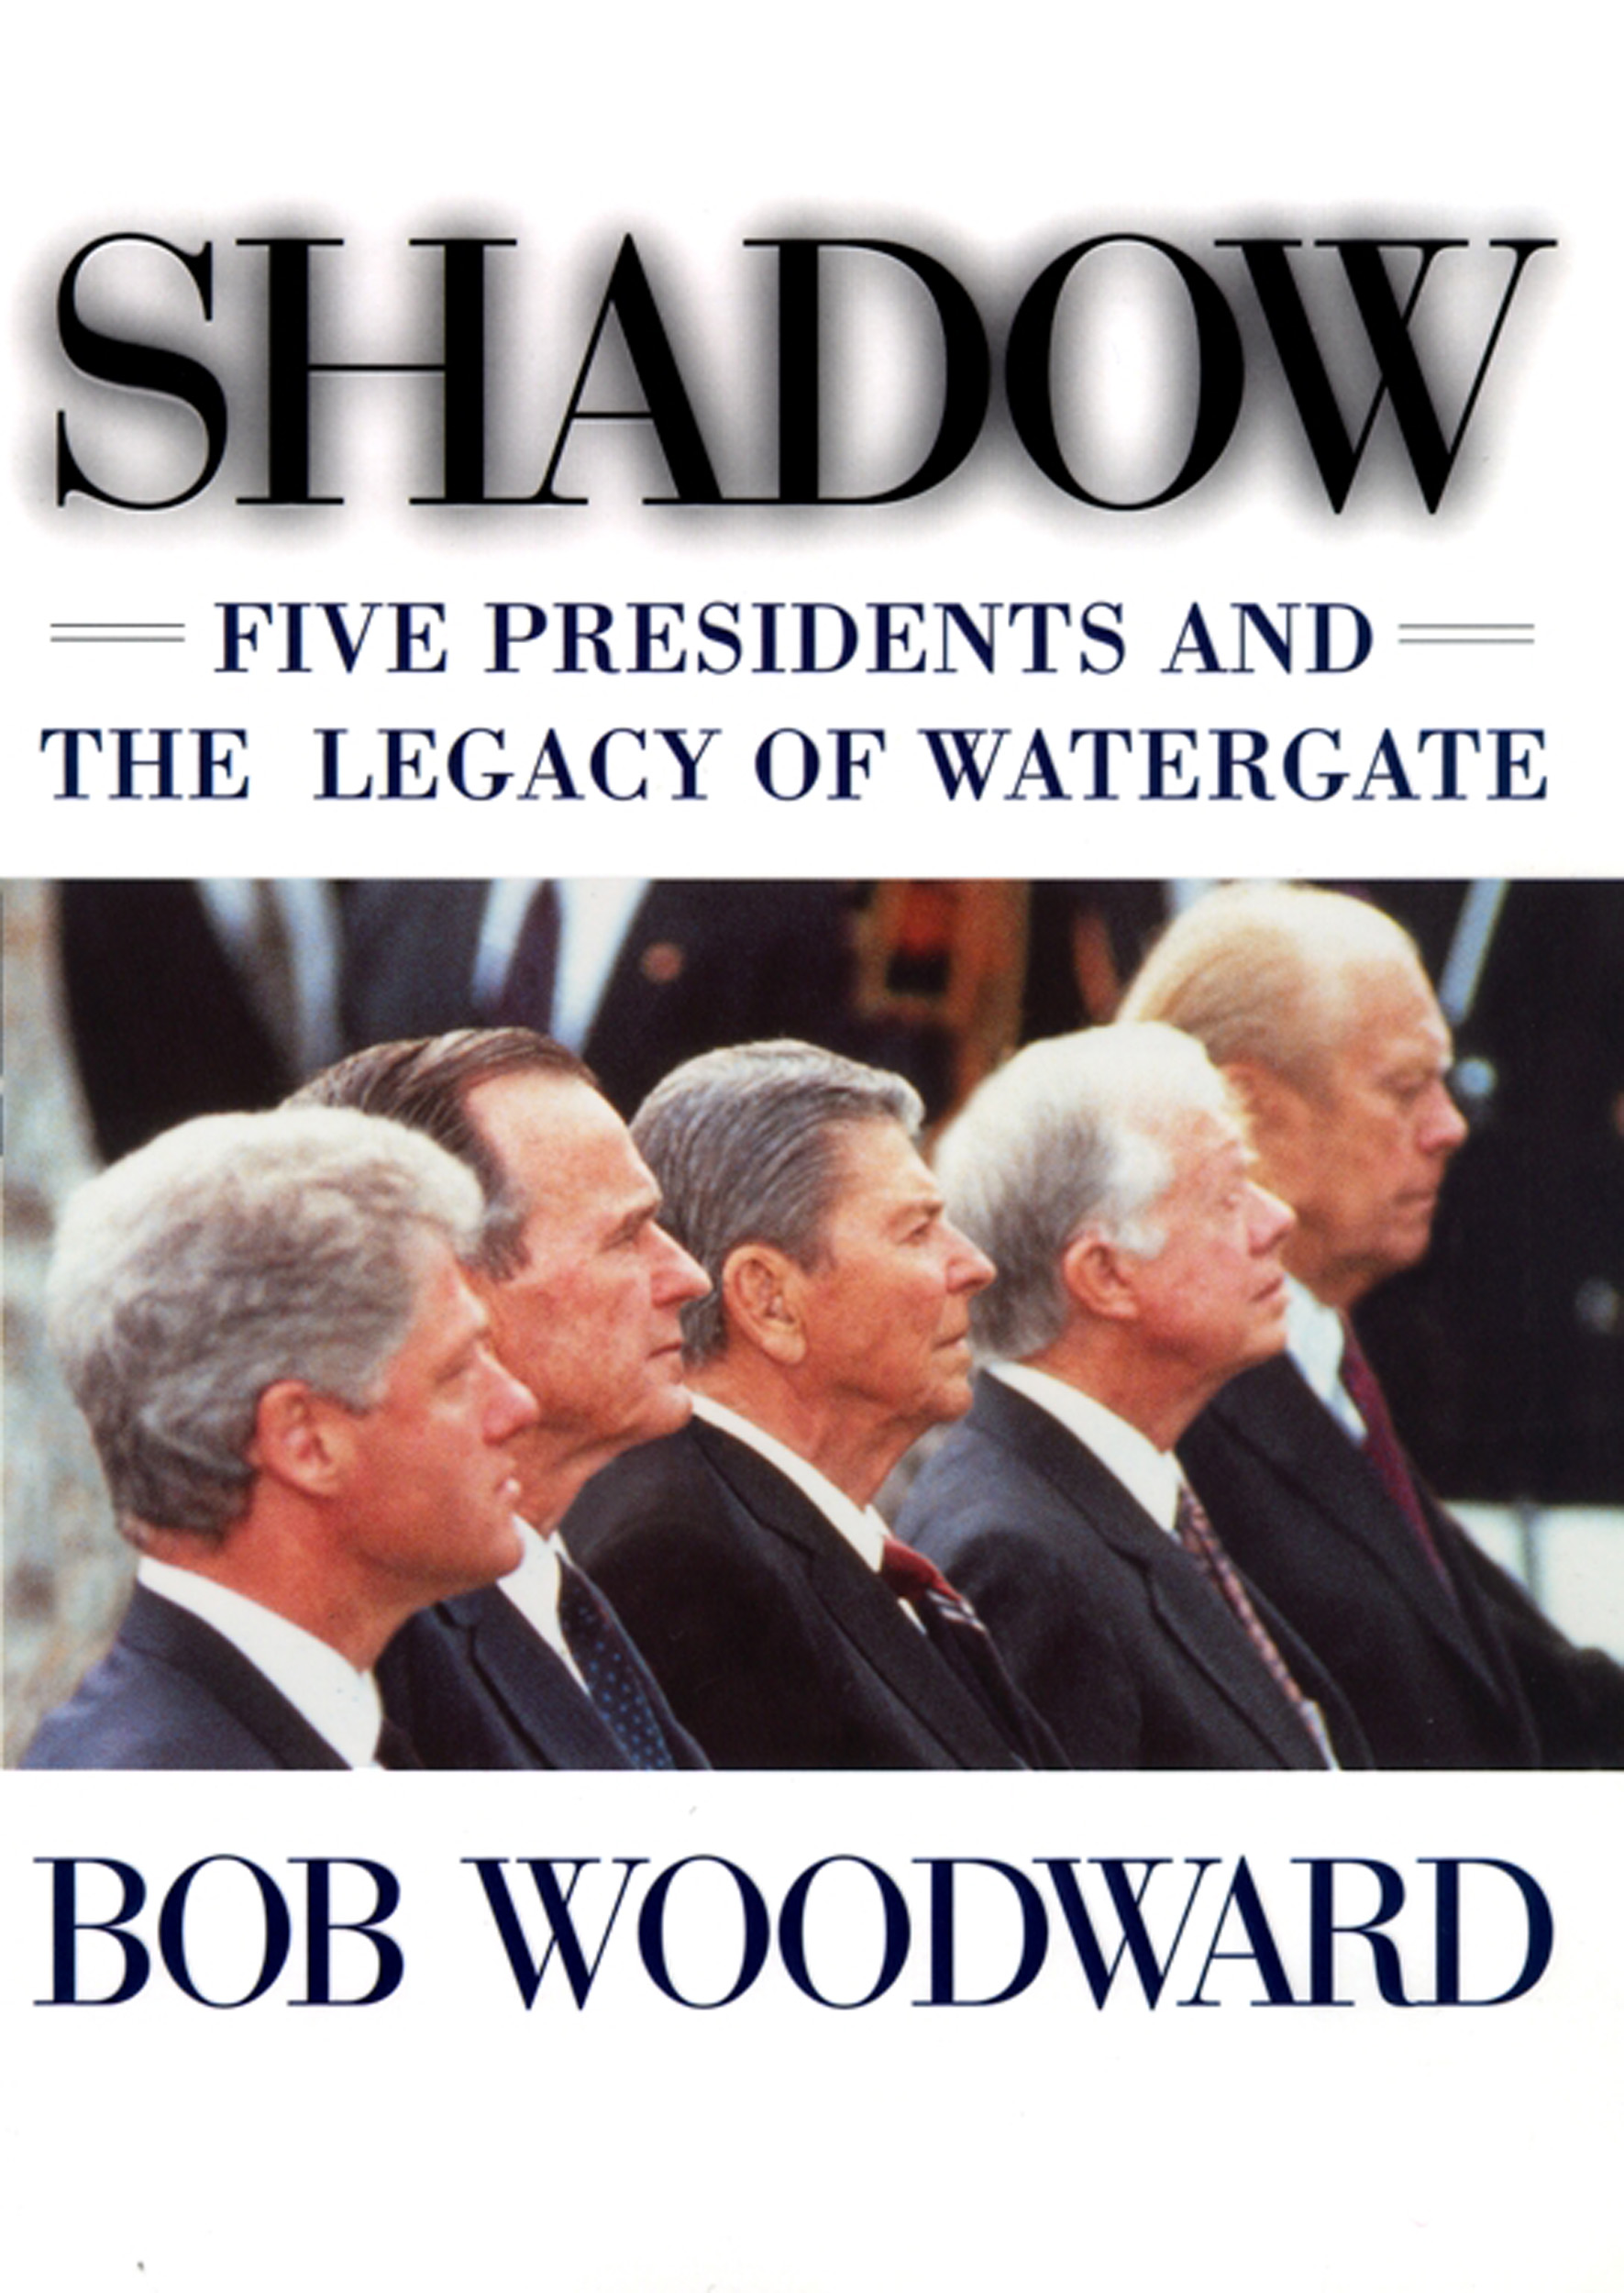 An analysis of plan of attack by journalist bob woodward